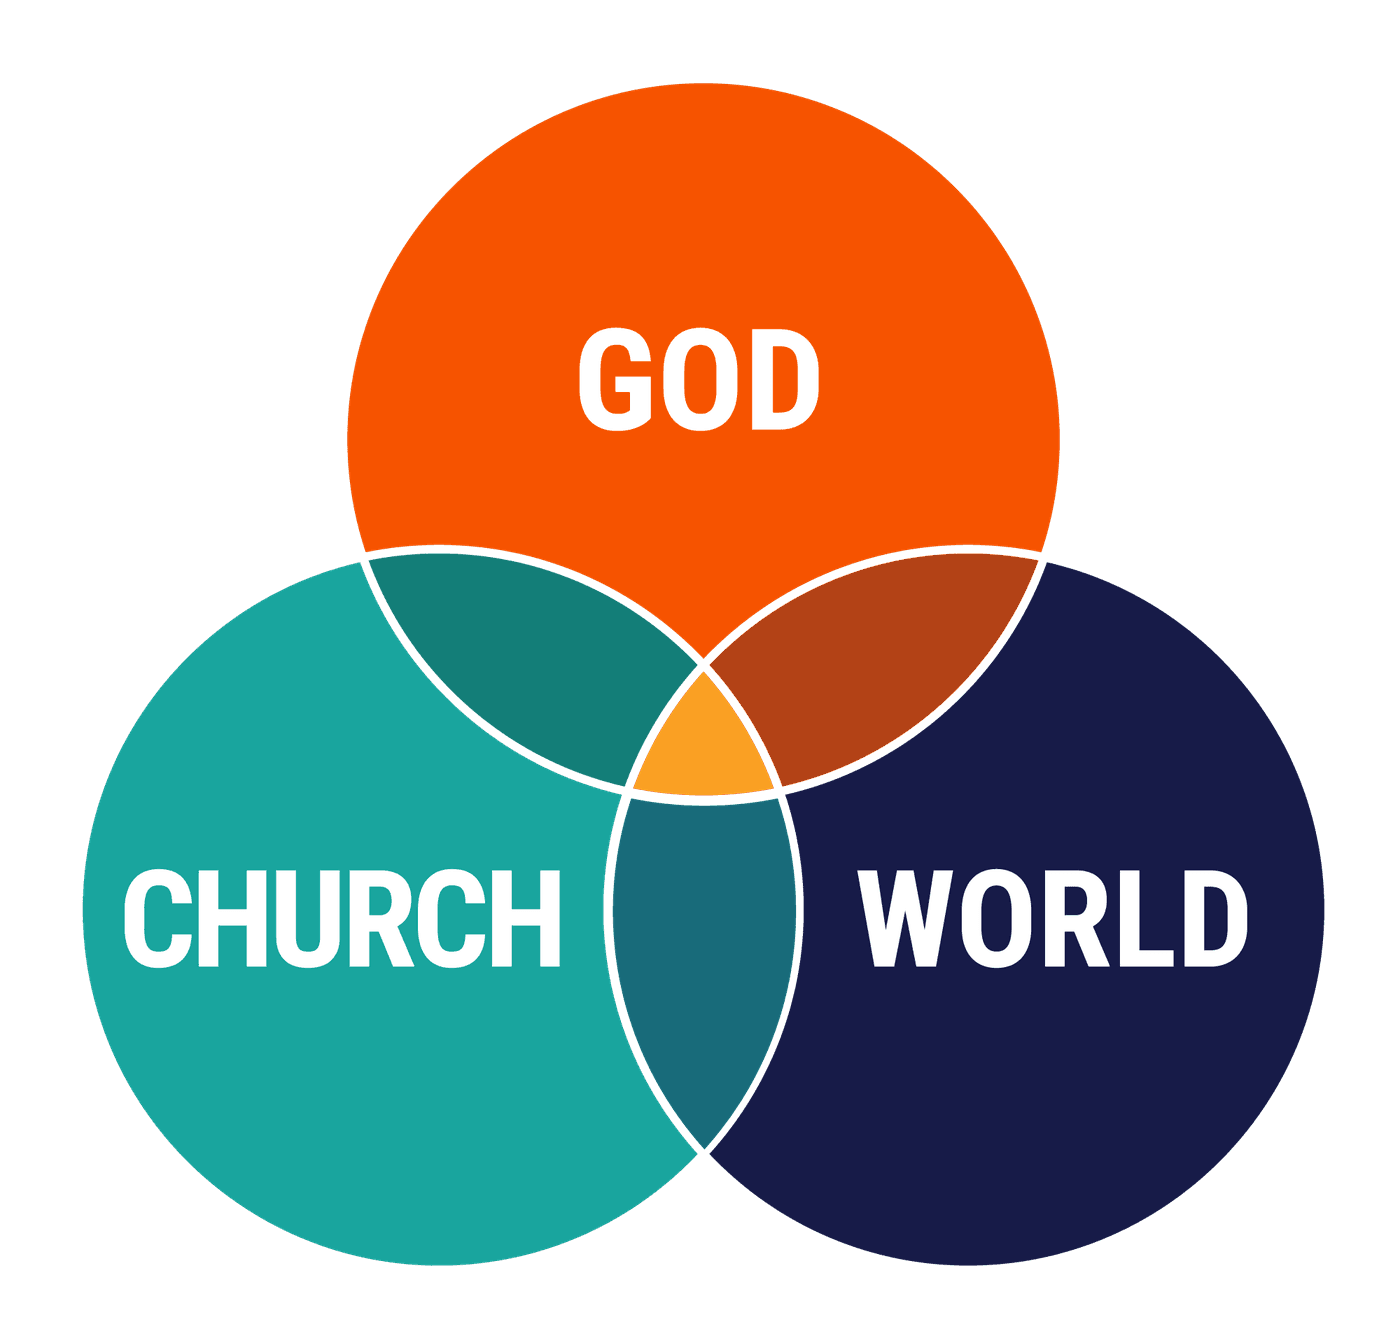 3 relationships to become like Jesus